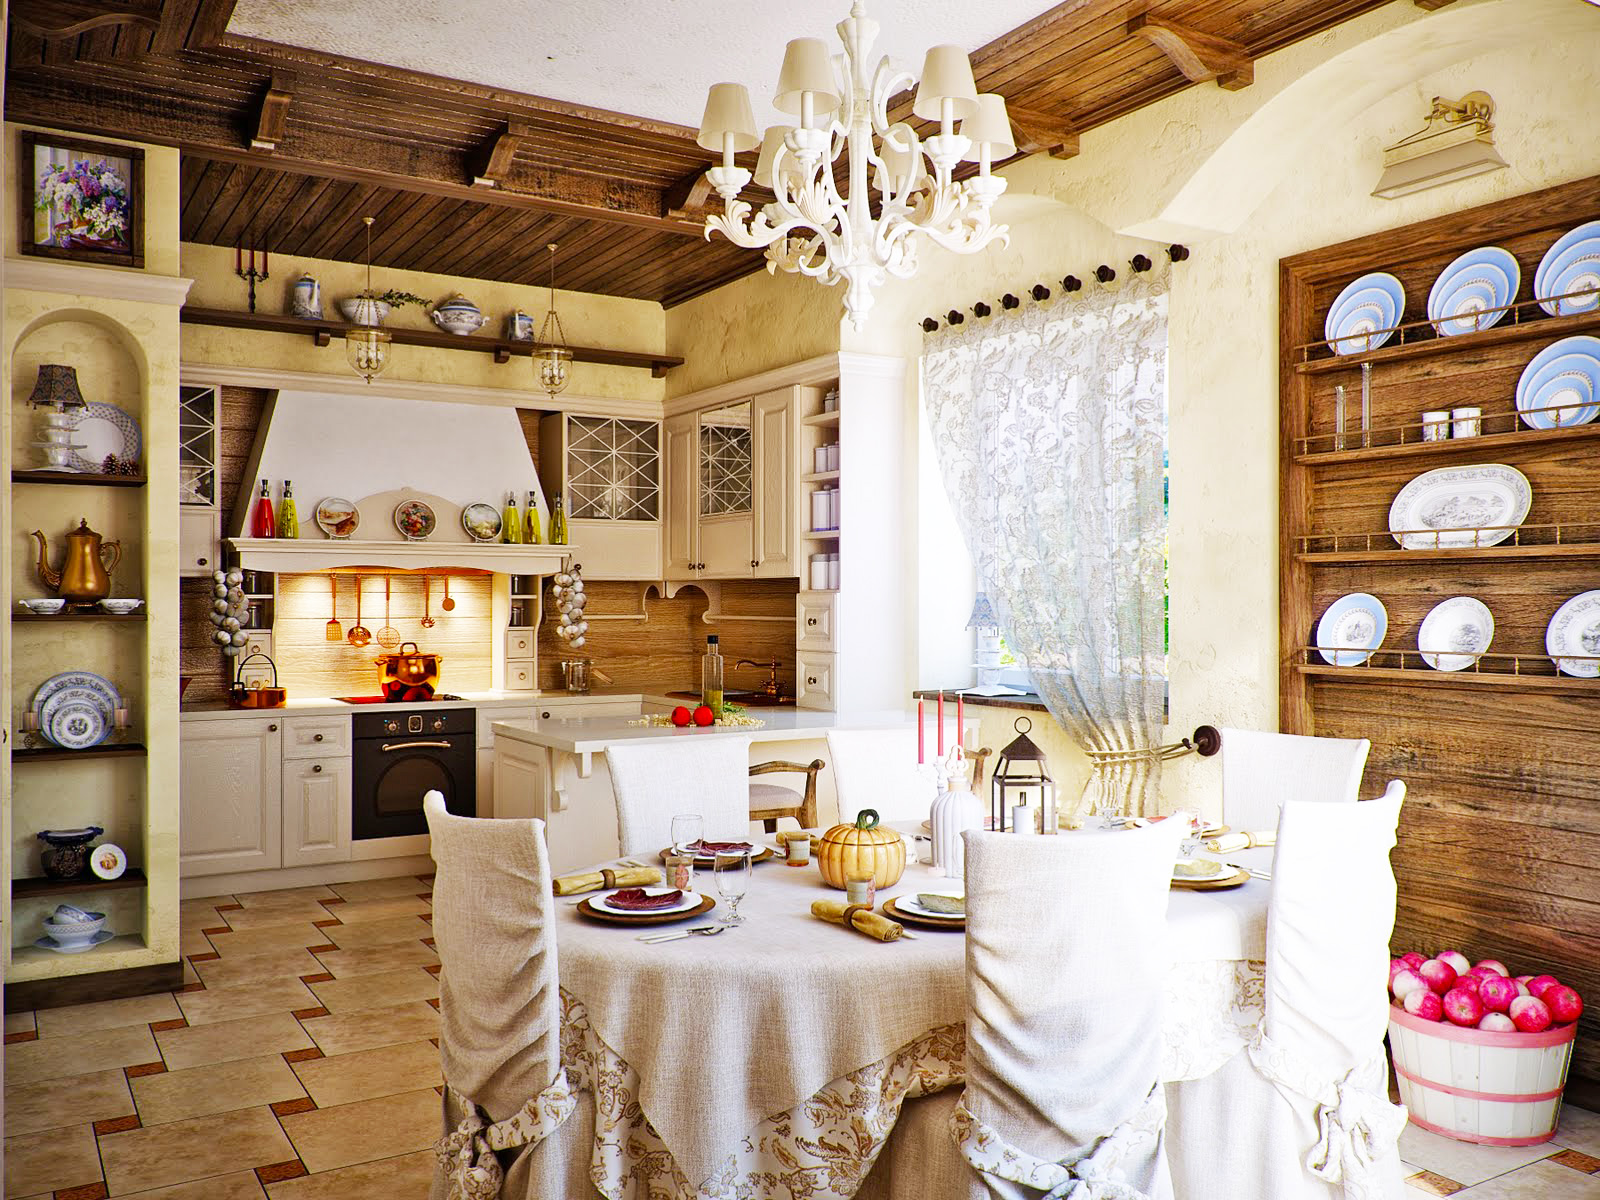 country-kitchen-design-for-small-kitchen-remodeling-ideas-with-white-oak-kitchen-cabinets-and-pendant-lights-decorations